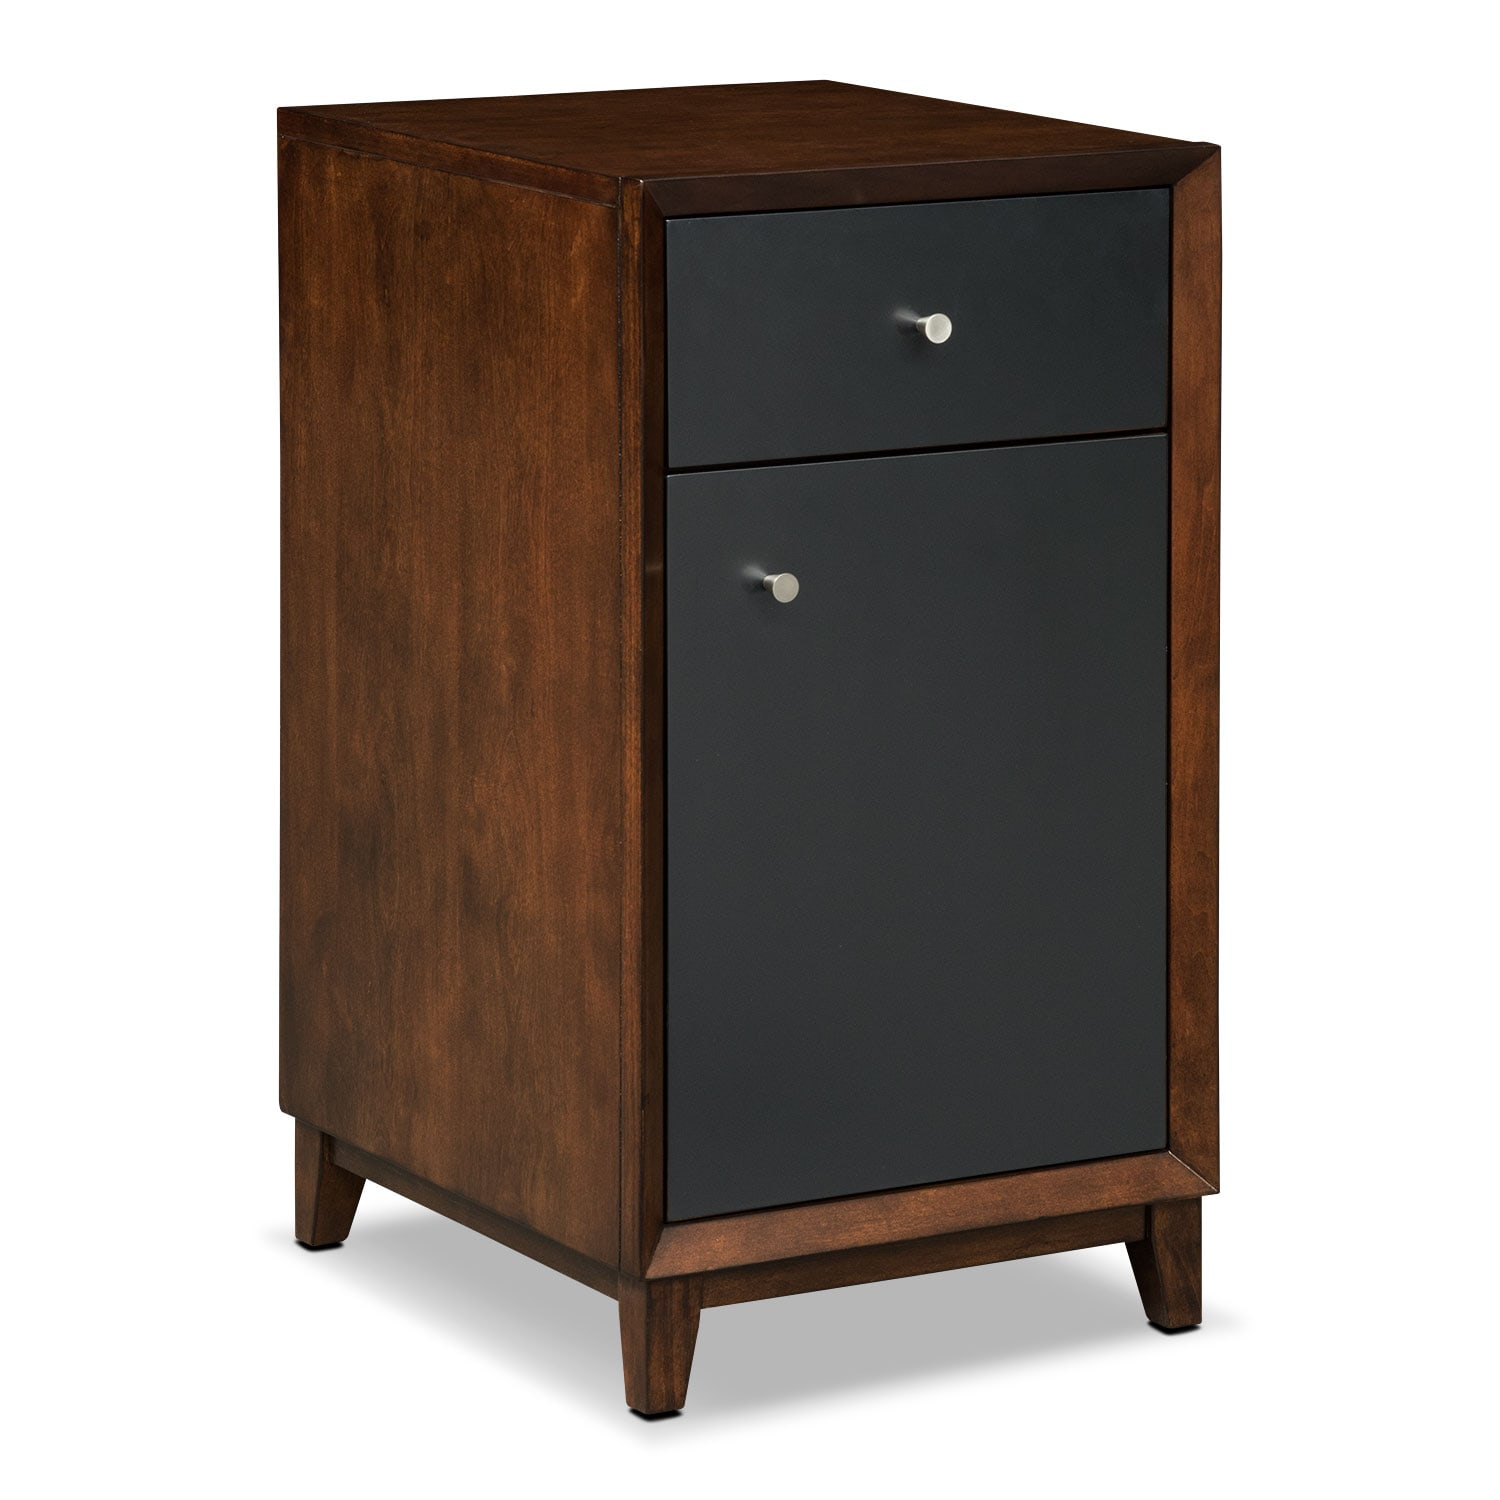 Oslo Door File Cabinet - Black